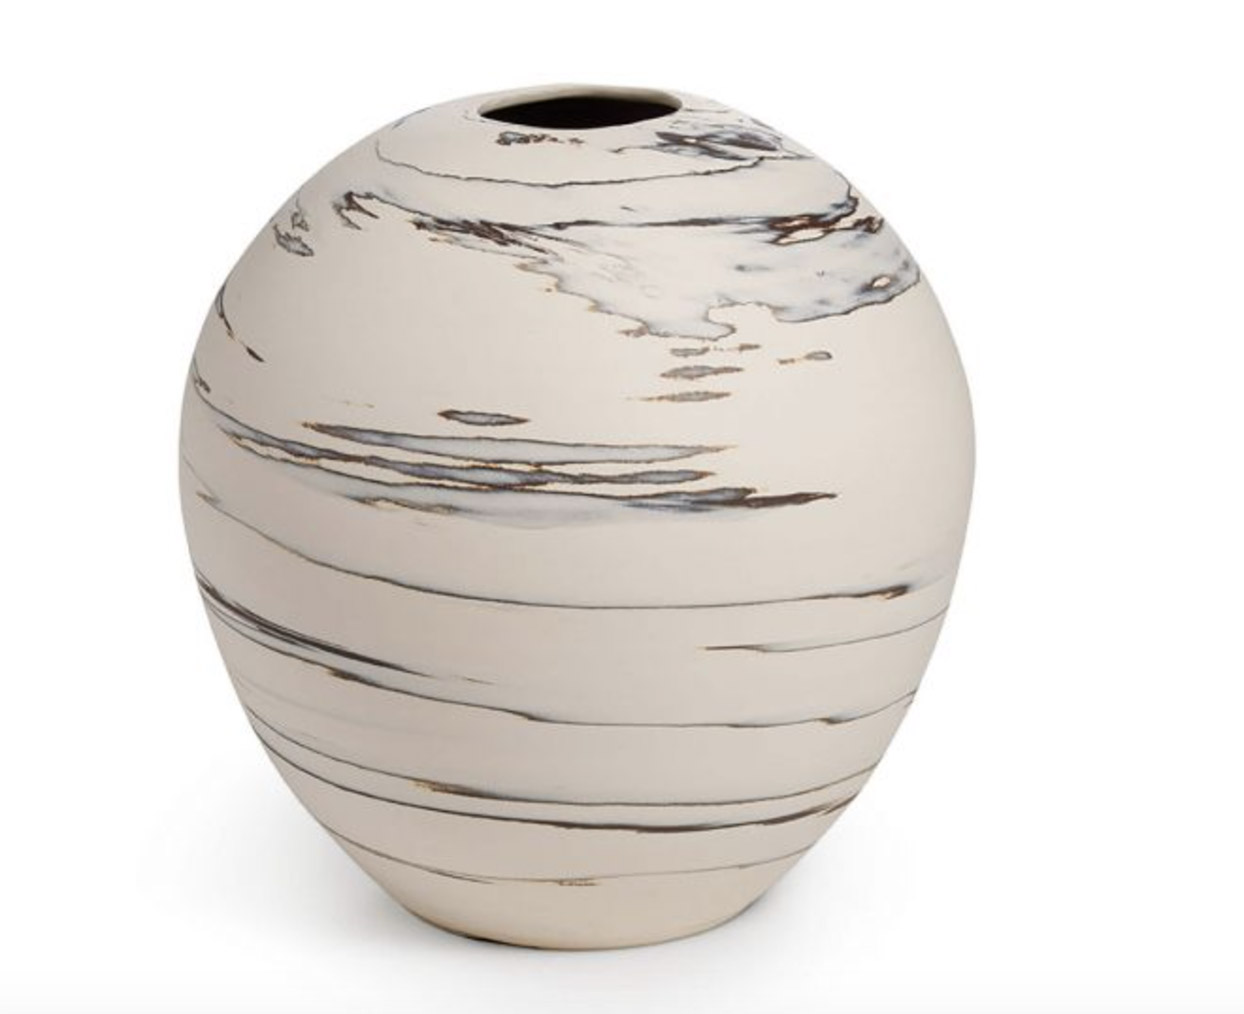 rounded vase with small opening, cream and gray